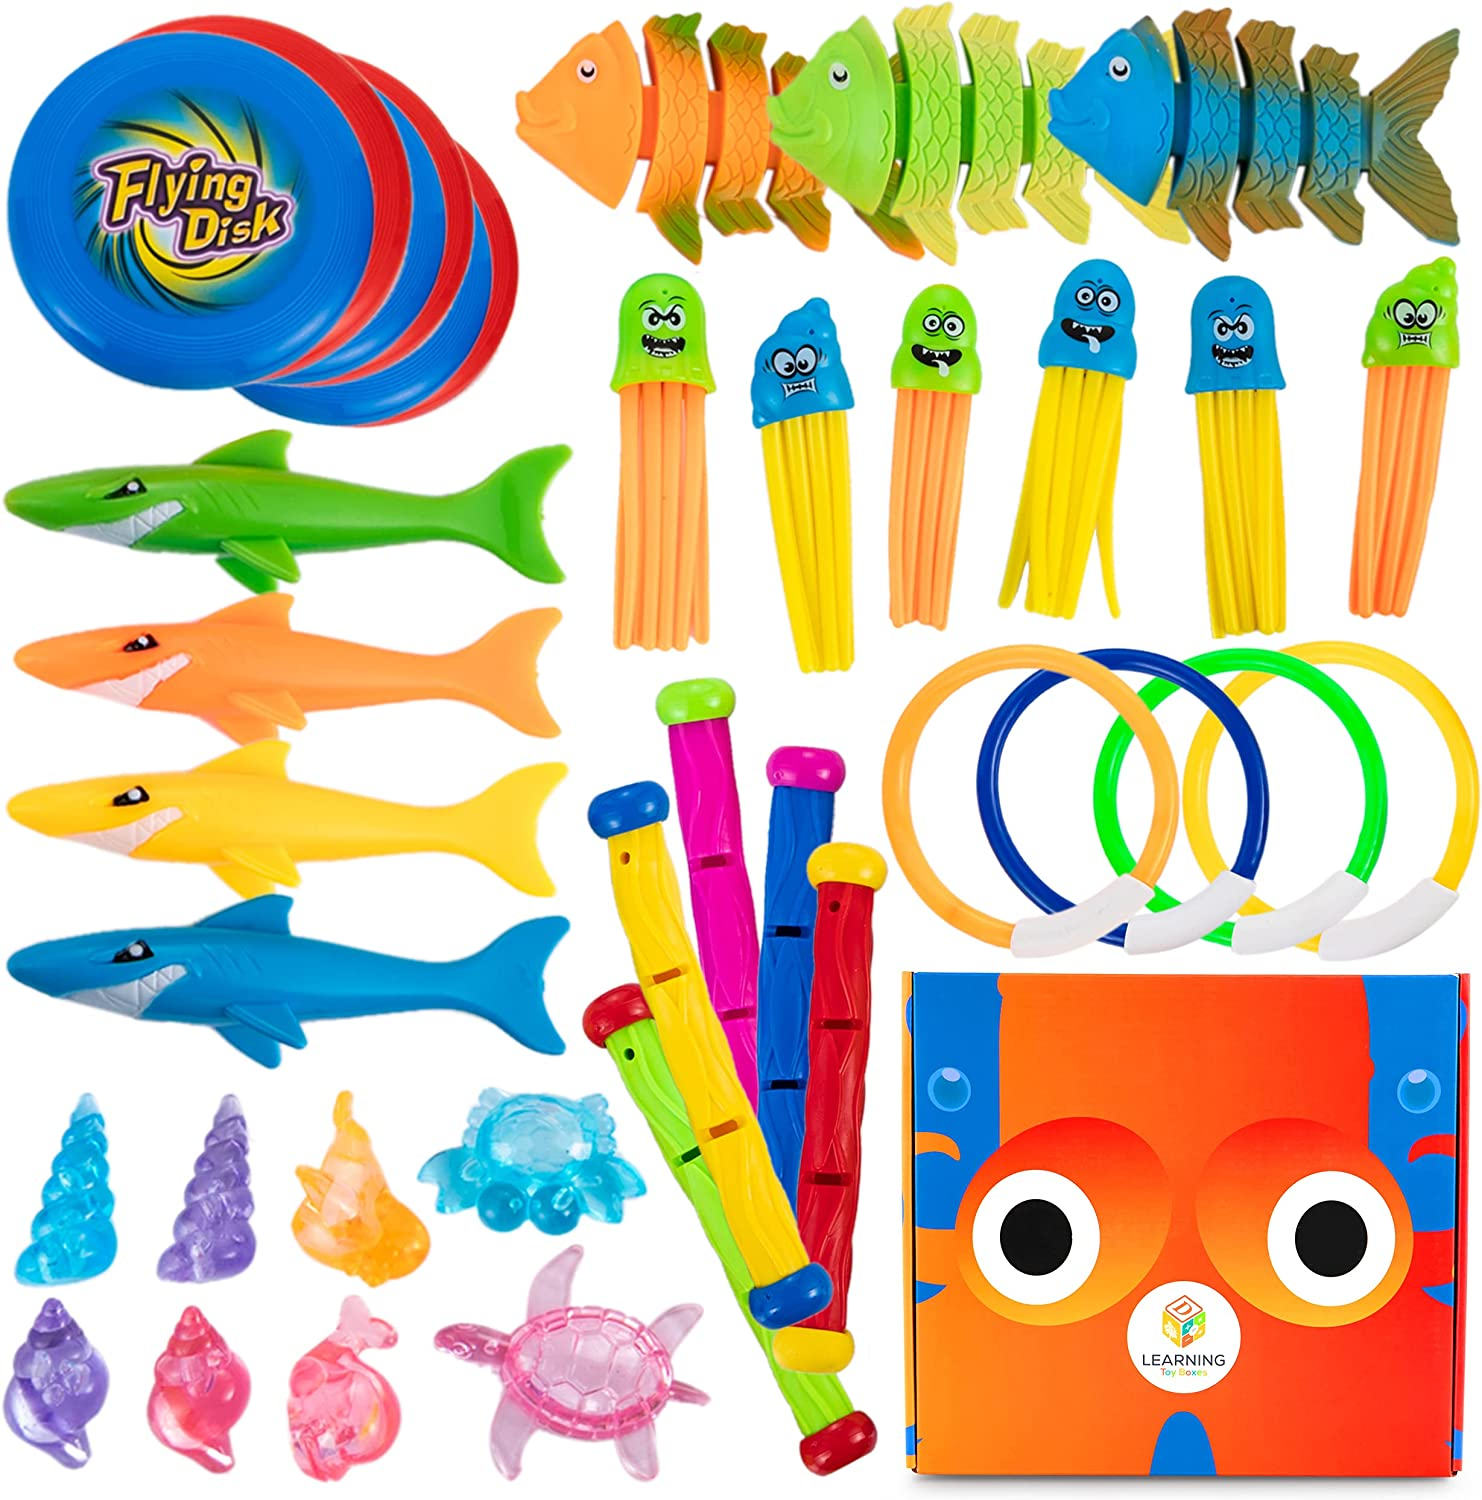 L Max 79% OFF Learning Toy Boxes Pool Diving Toys Sale SALE% OFF Kids Flo Sinking PC 38 for